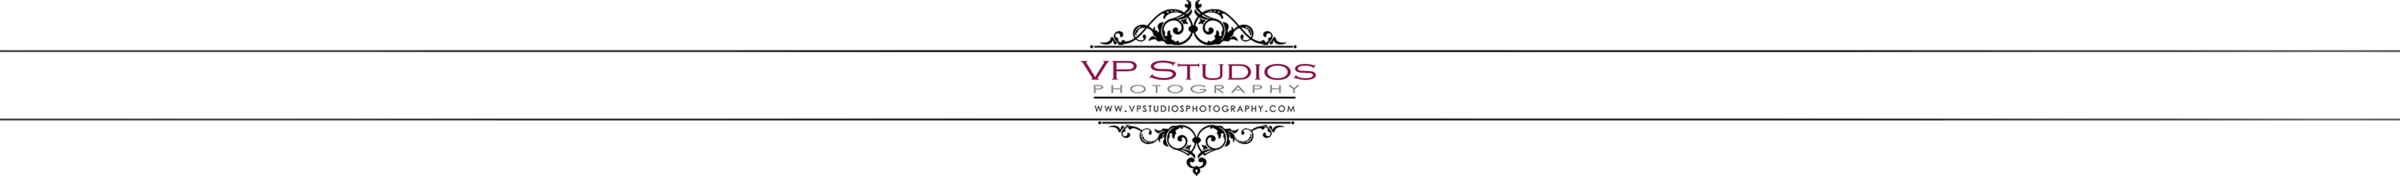 VP Studios - Logo_Large_WEB